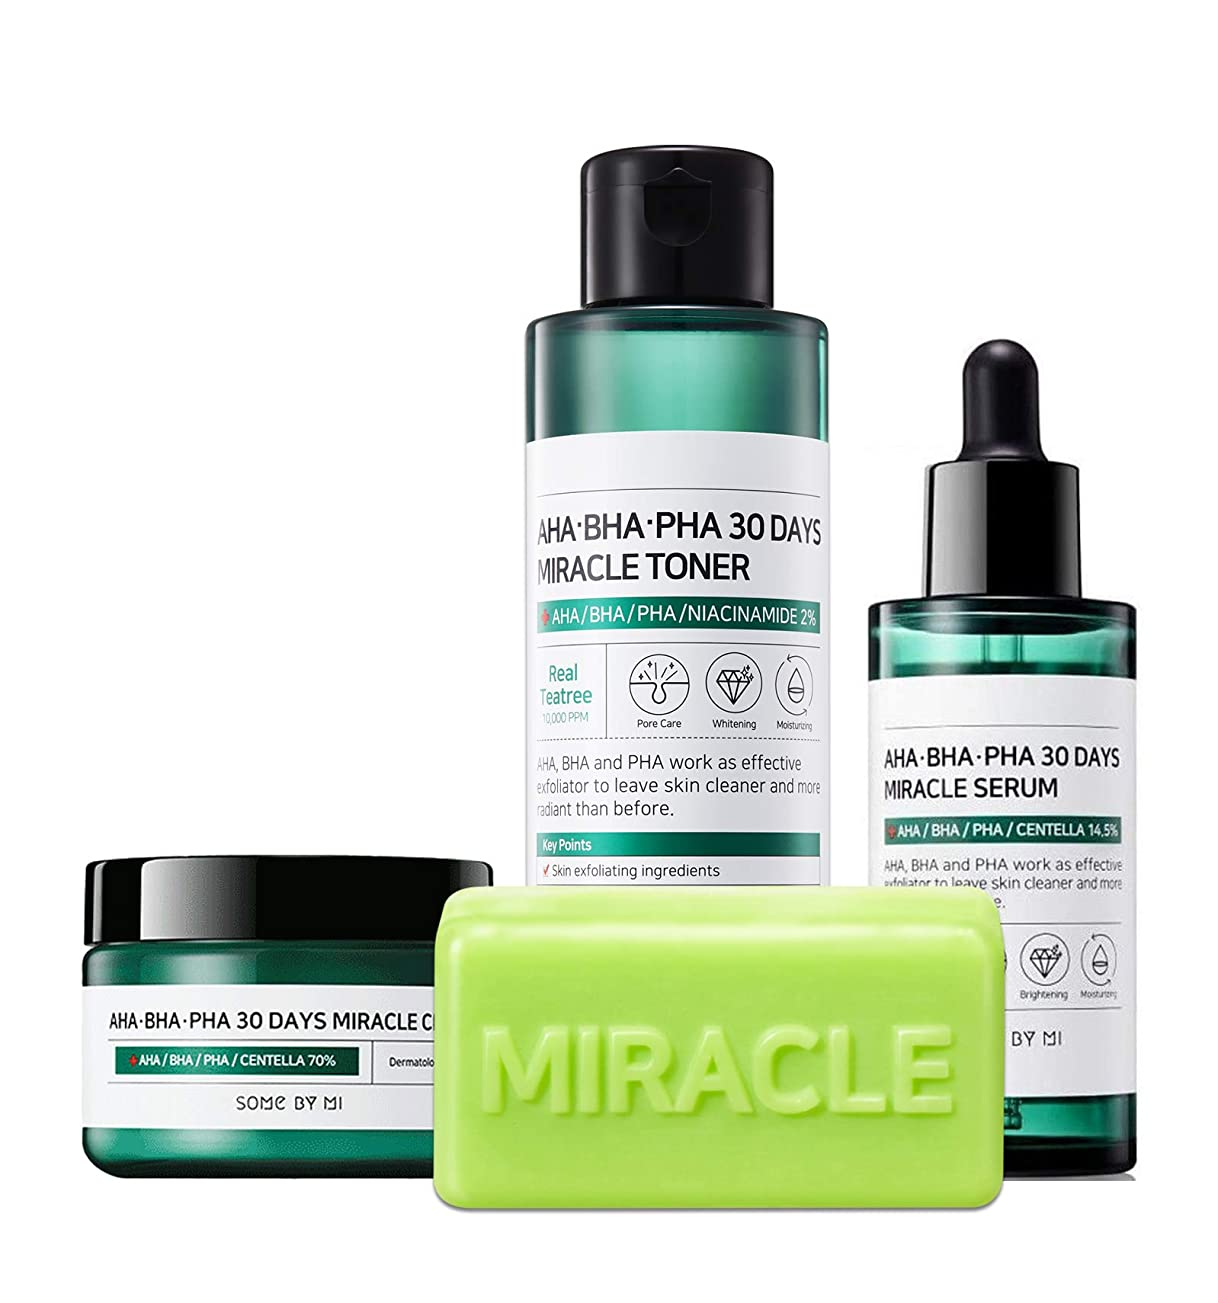 バタフライ削る結び目Somebymi (サムバイミー) AHA BHA PHA Miracle Series Full Set 4 Pcs (Soap, Toner, Serum, Cream) Anti-acne Exfoliation Hydration Brightening, Skin Barrier & Recovery, Soothing with Tea Tree [並行輸入品]